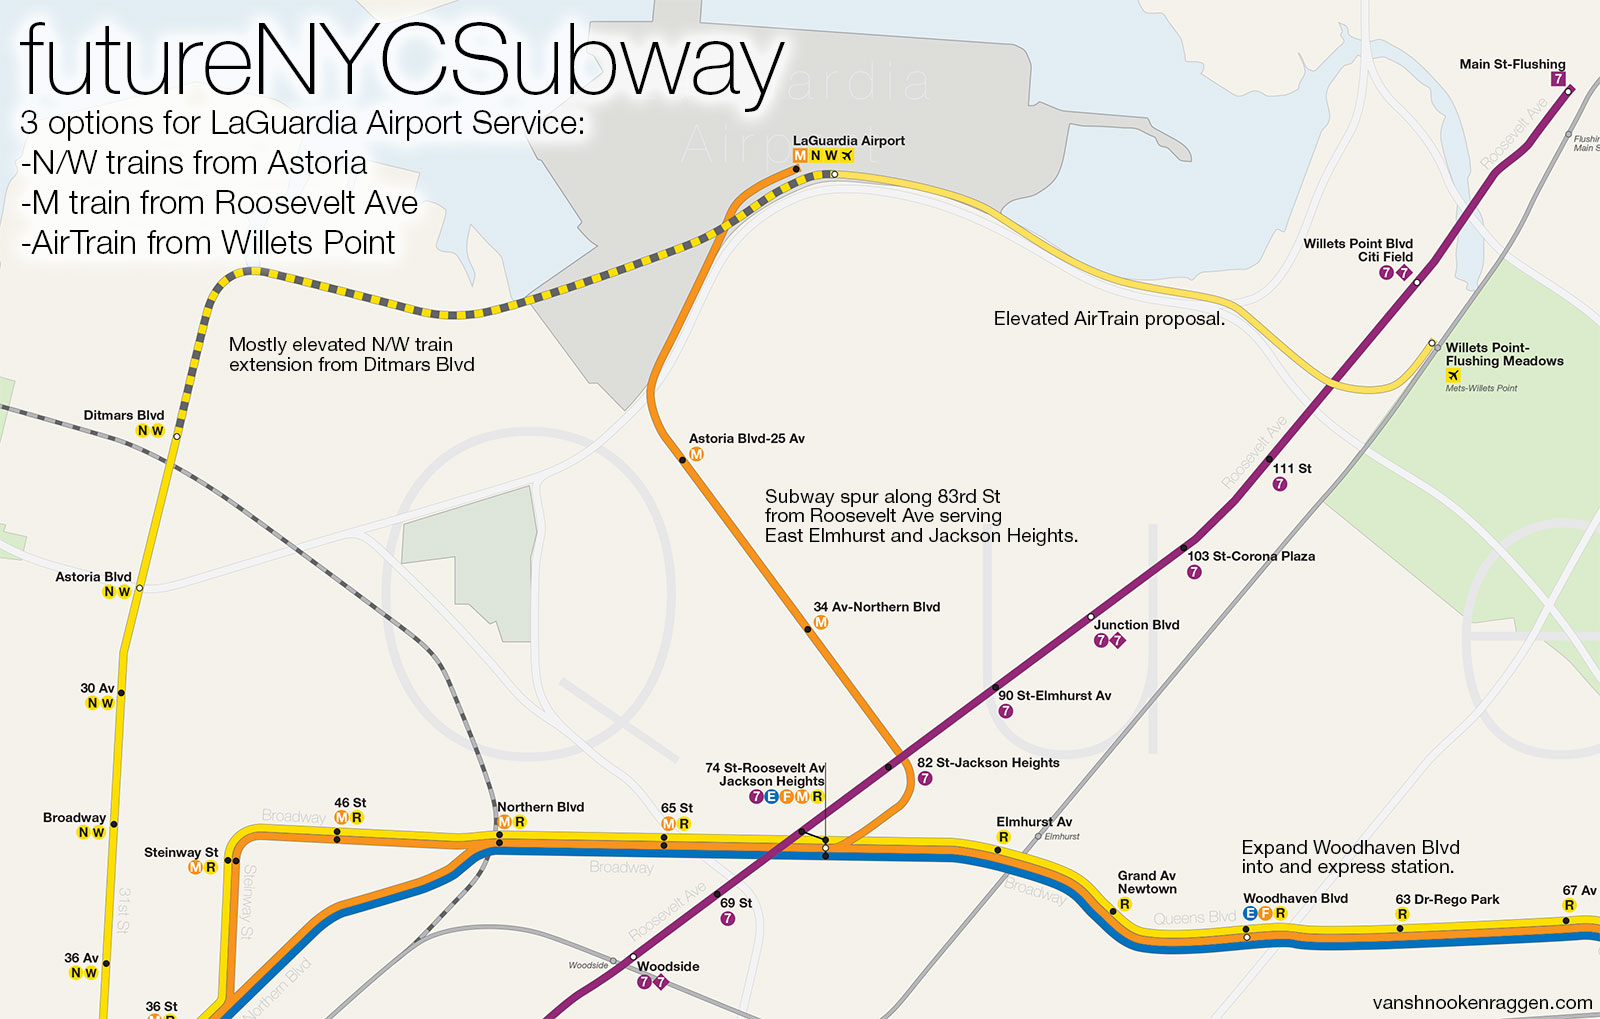 Laguardia Subway Map.Should There Even Be A One Seat Ride To The Airport Vanshnookenraggen